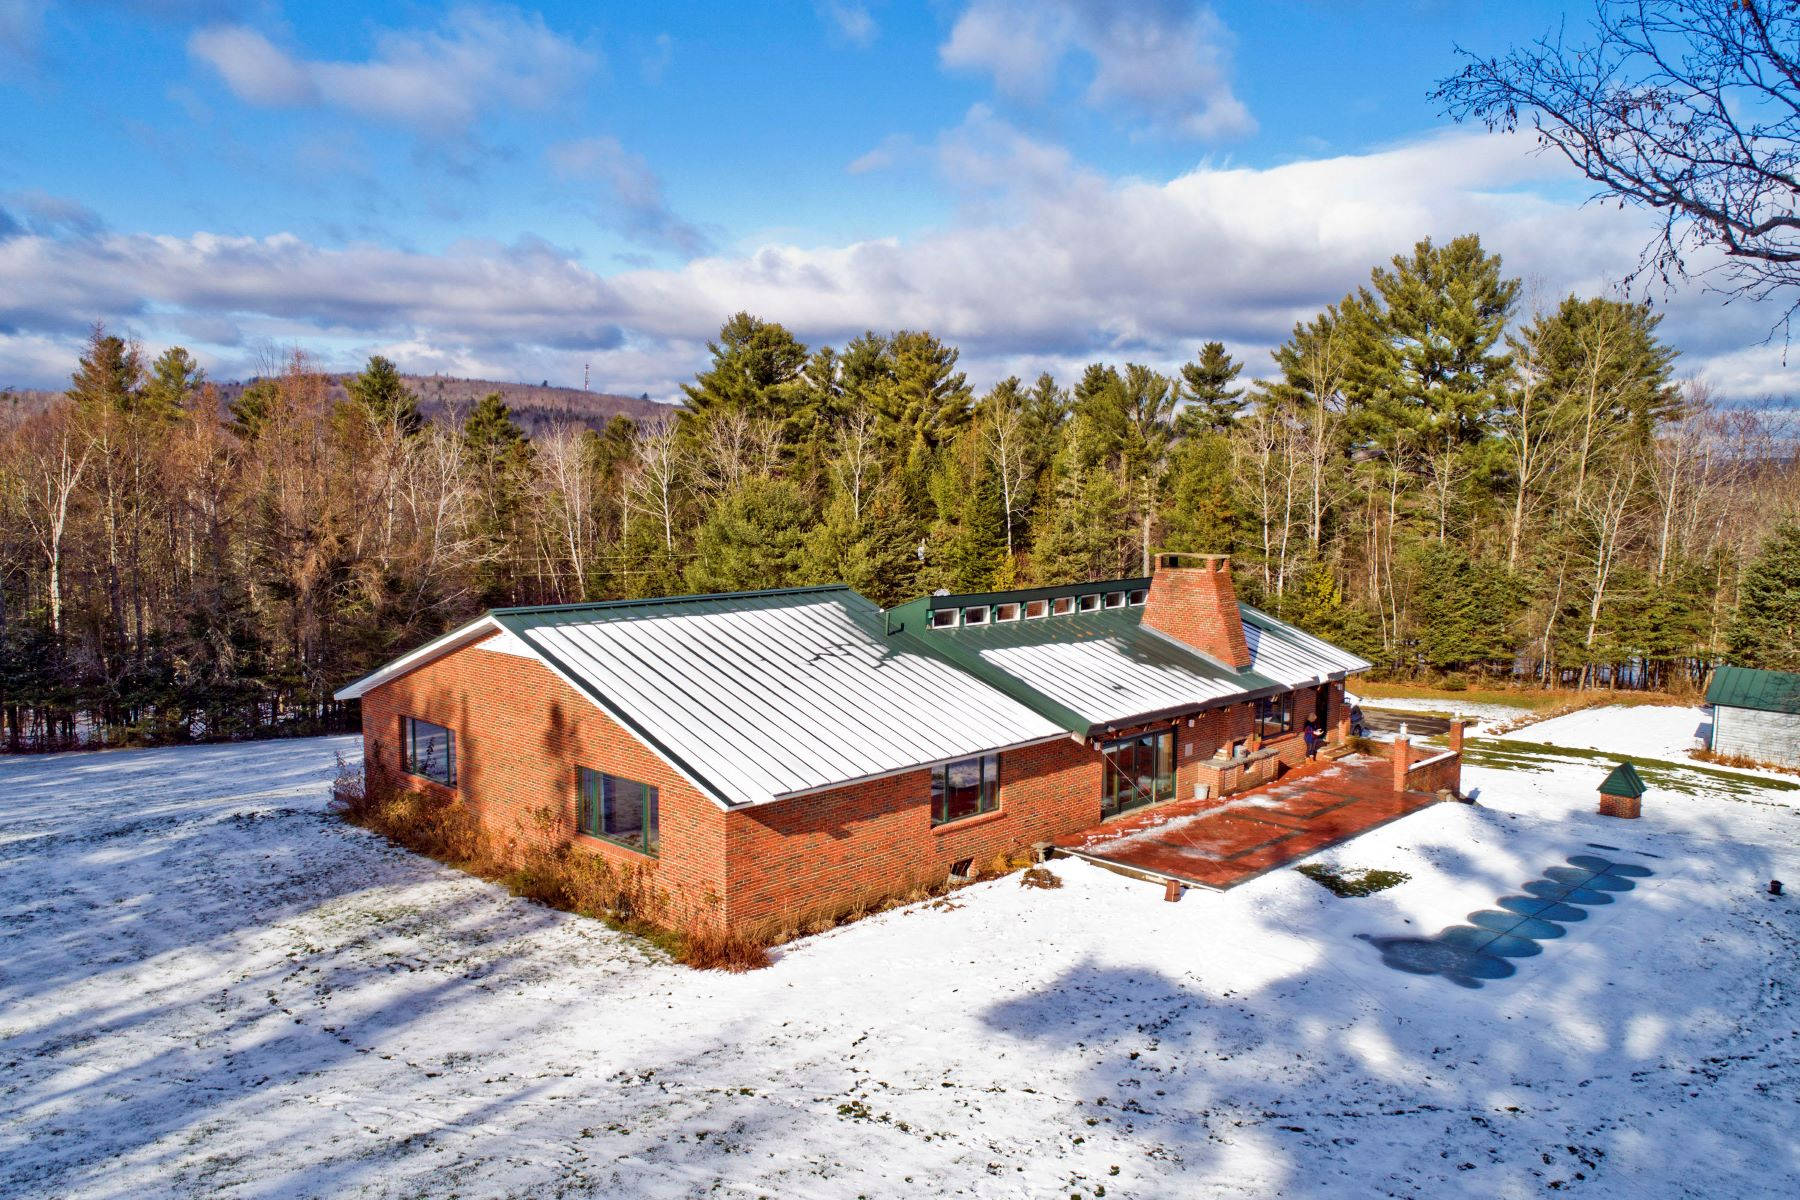 Single Family Homes for Sale at 25 Dore Hill Road Athens, Maine 04912 United States